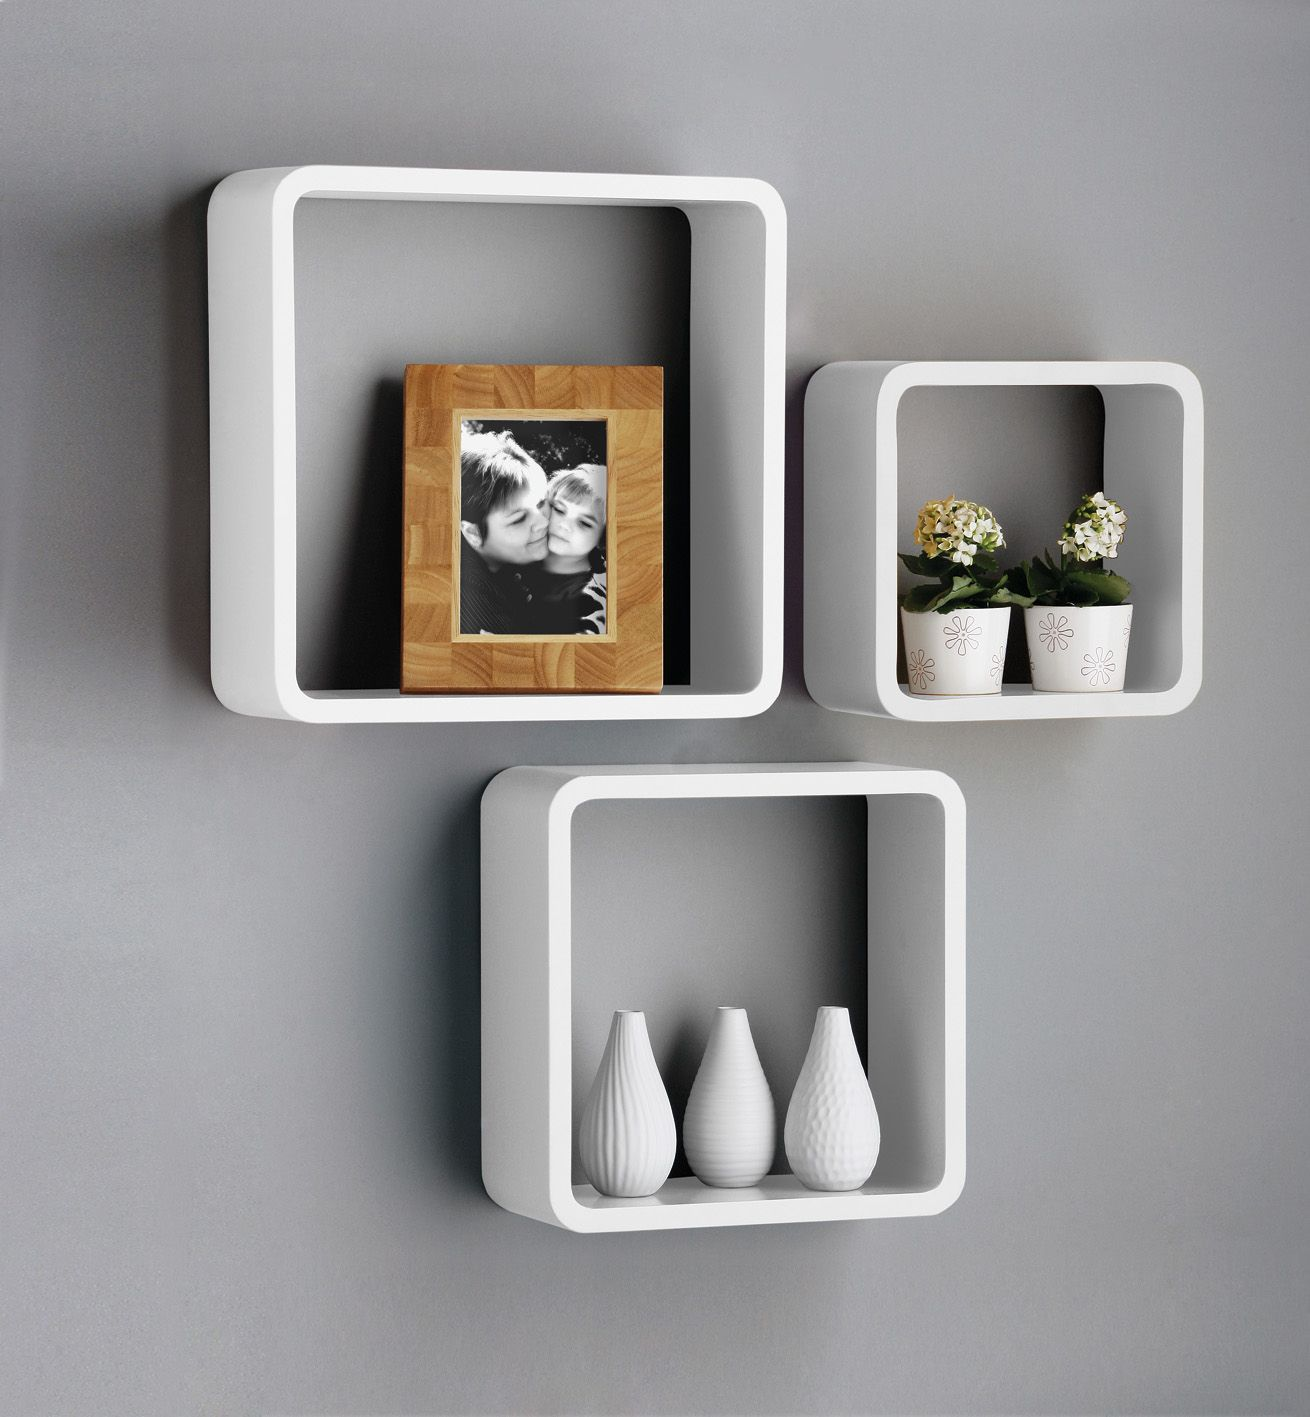 New Set Of 3 White Black Square Floating Cube Wall Storage Shelves Shelf Cubes Wall Storage Shelves Floating Shelves Cubicle Accessories